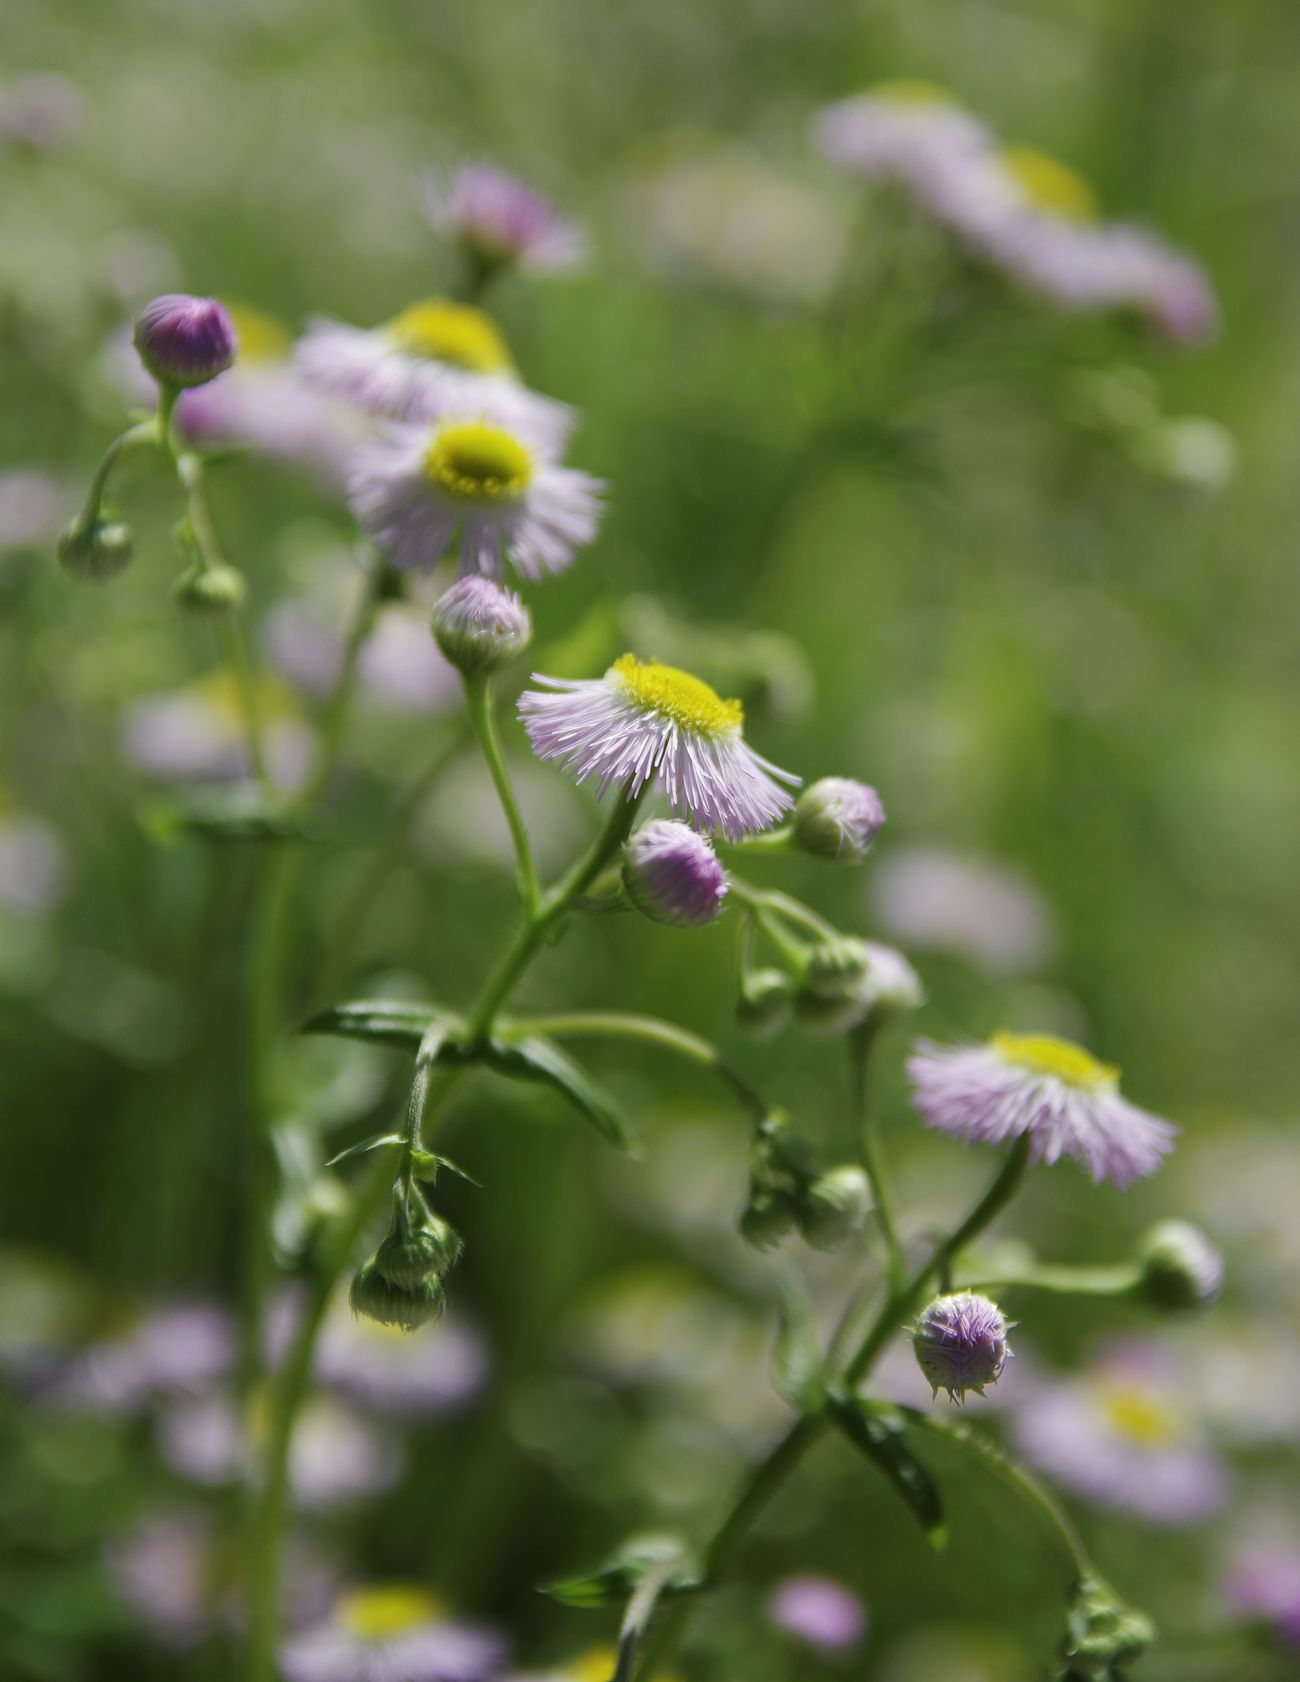 Sweet tiny. Flower Plant Nature Fragility Day Outdoors Beauty In Nature Growth Flower Head Close-up Freshness Depth Ot Field Blurred Foreground Blurredbackground Photography